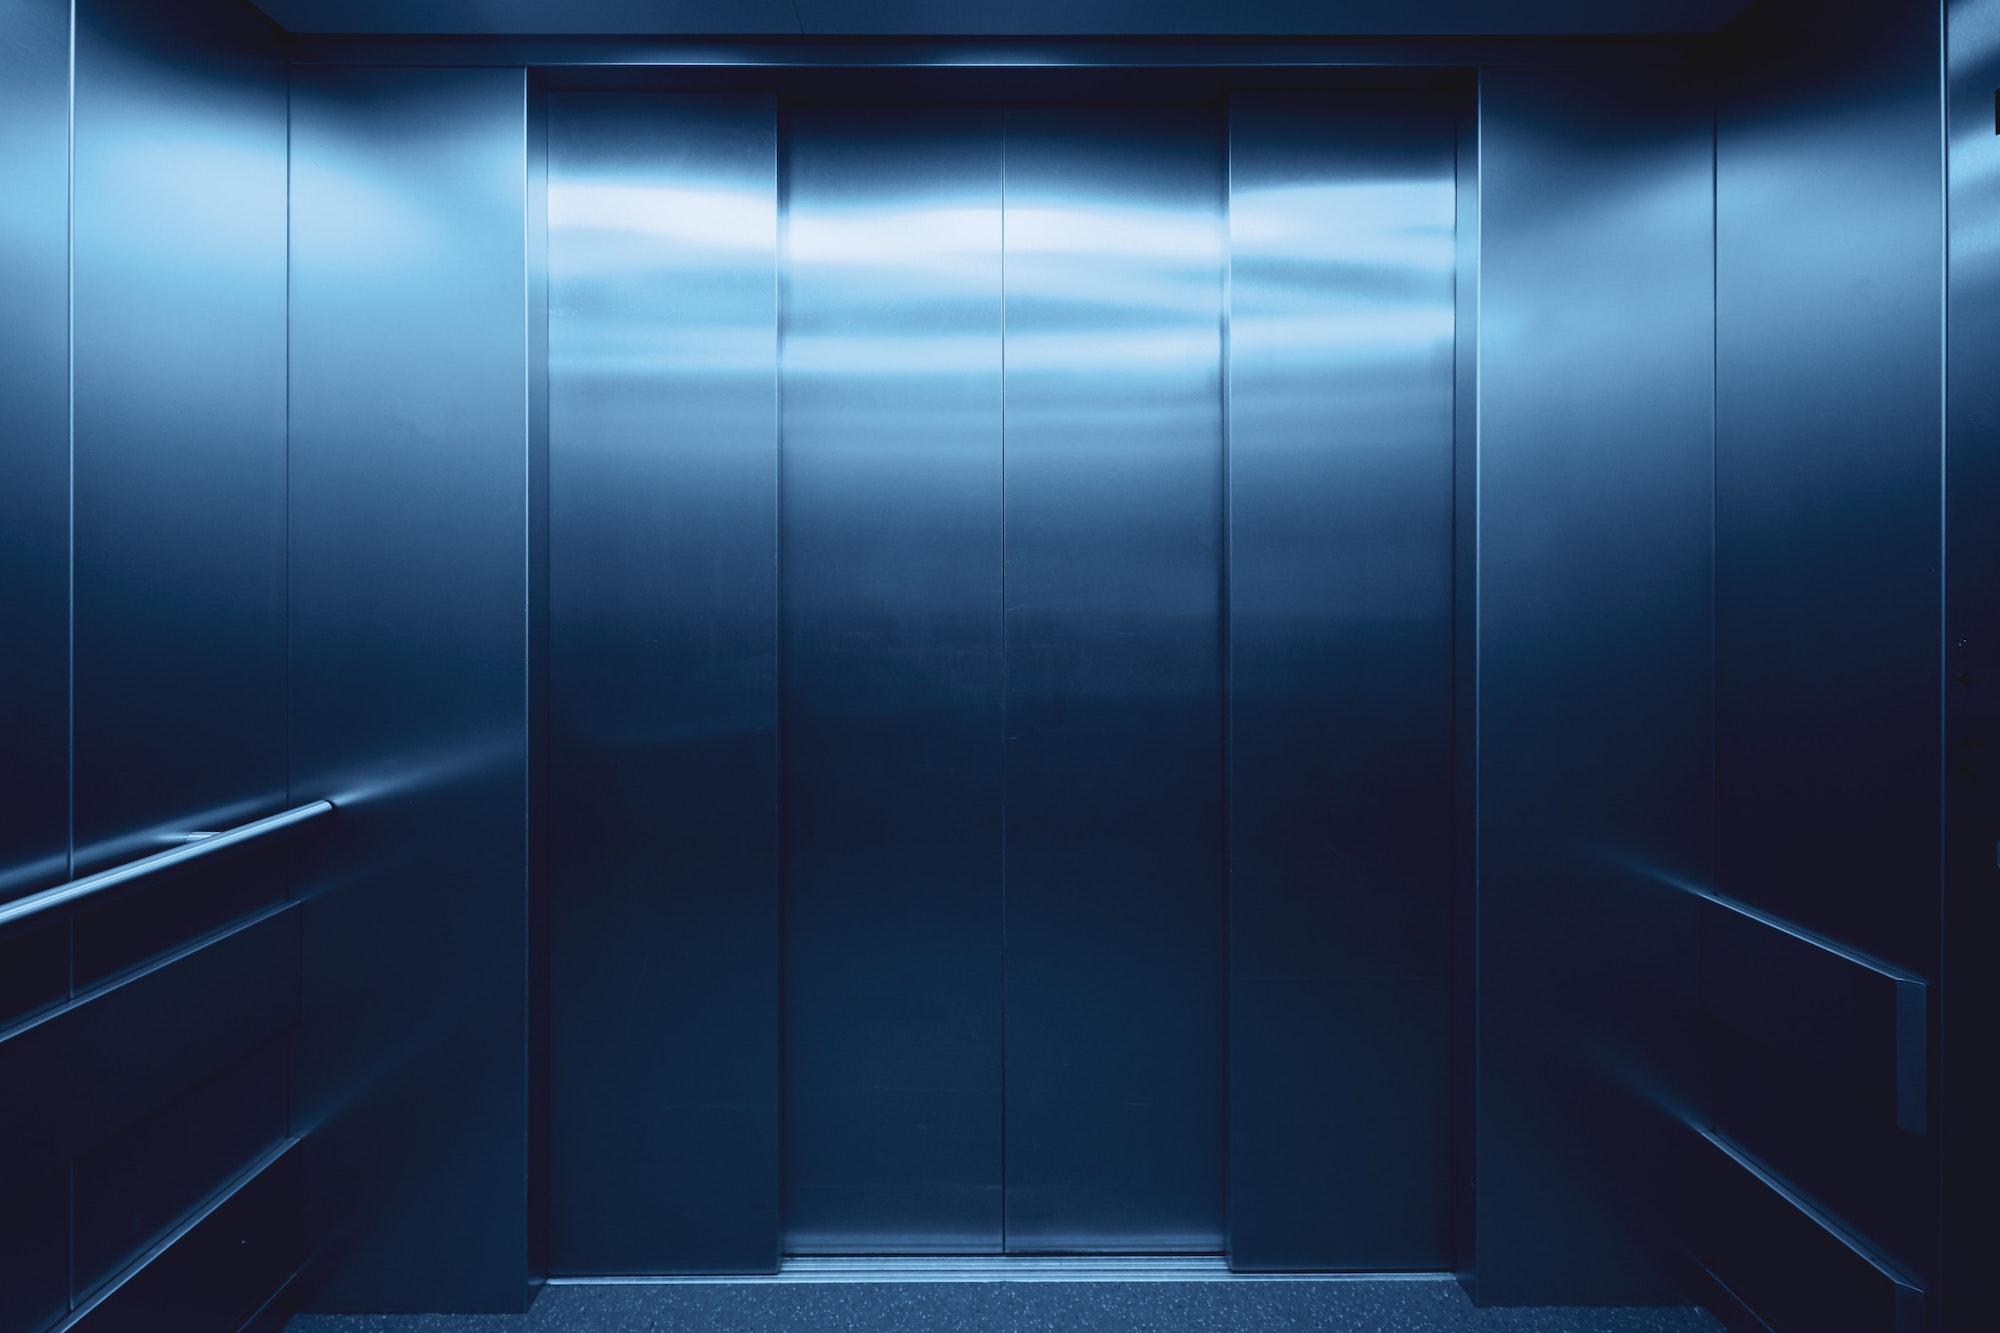 Optidrive Elevator provides comfortable patient transit